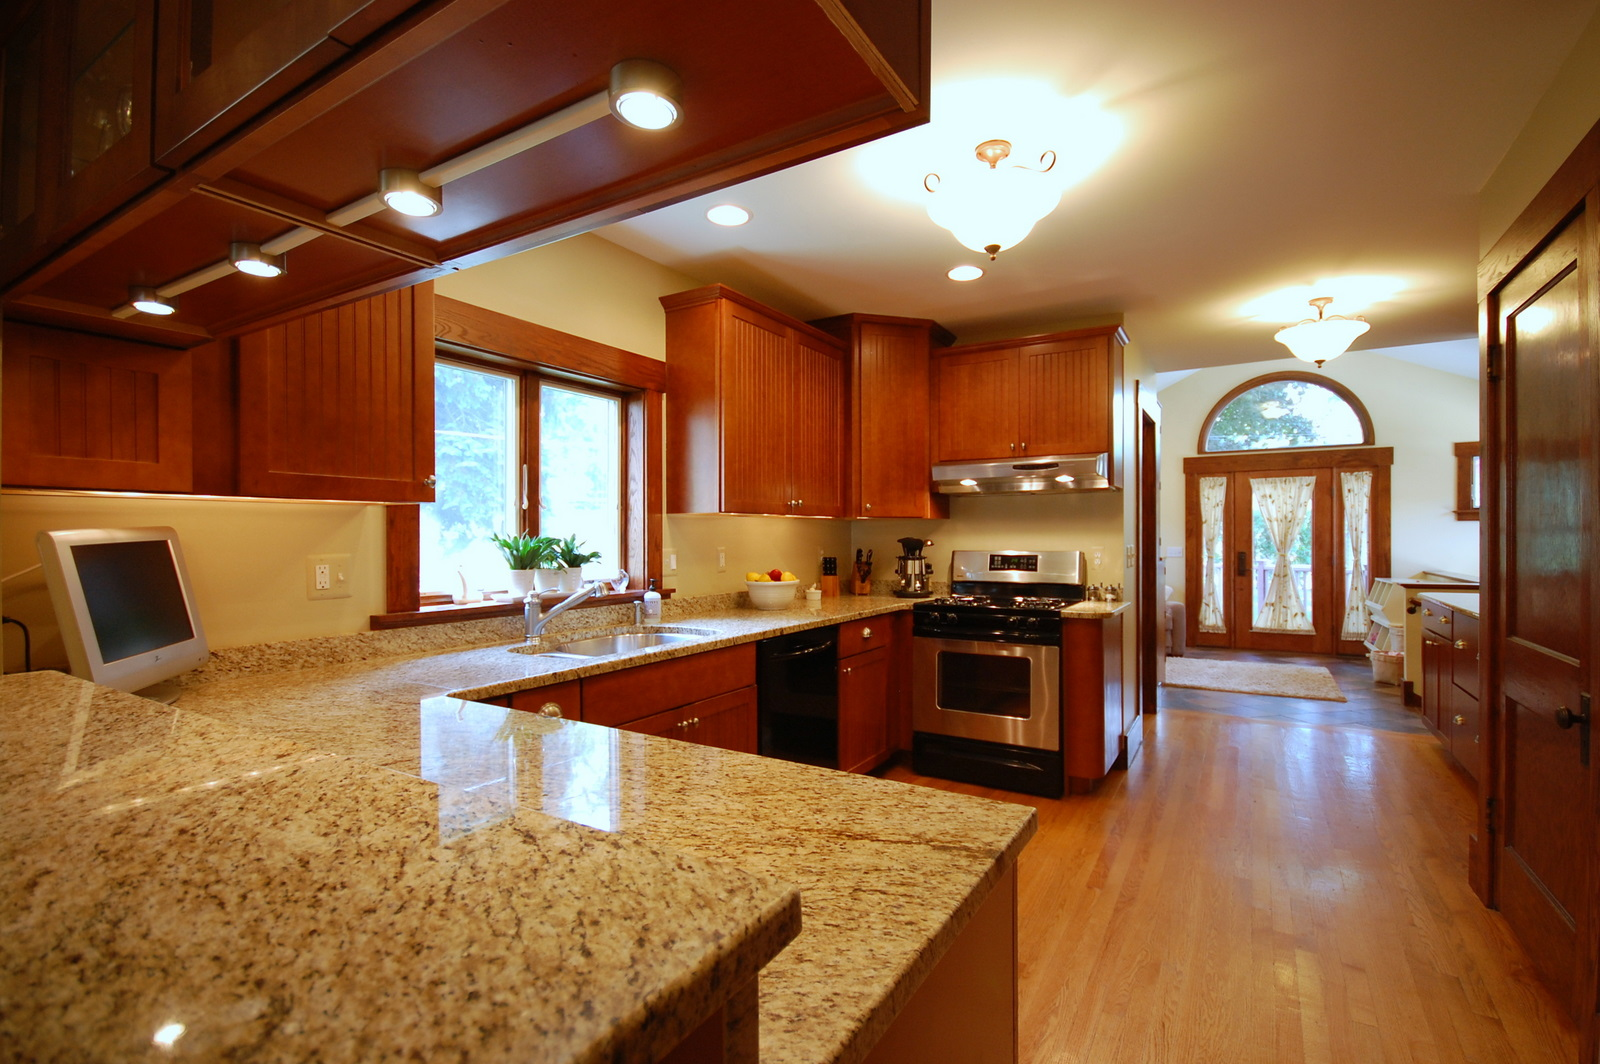 Granite installation jmarvinhandyman - Kitchen countertops design ...